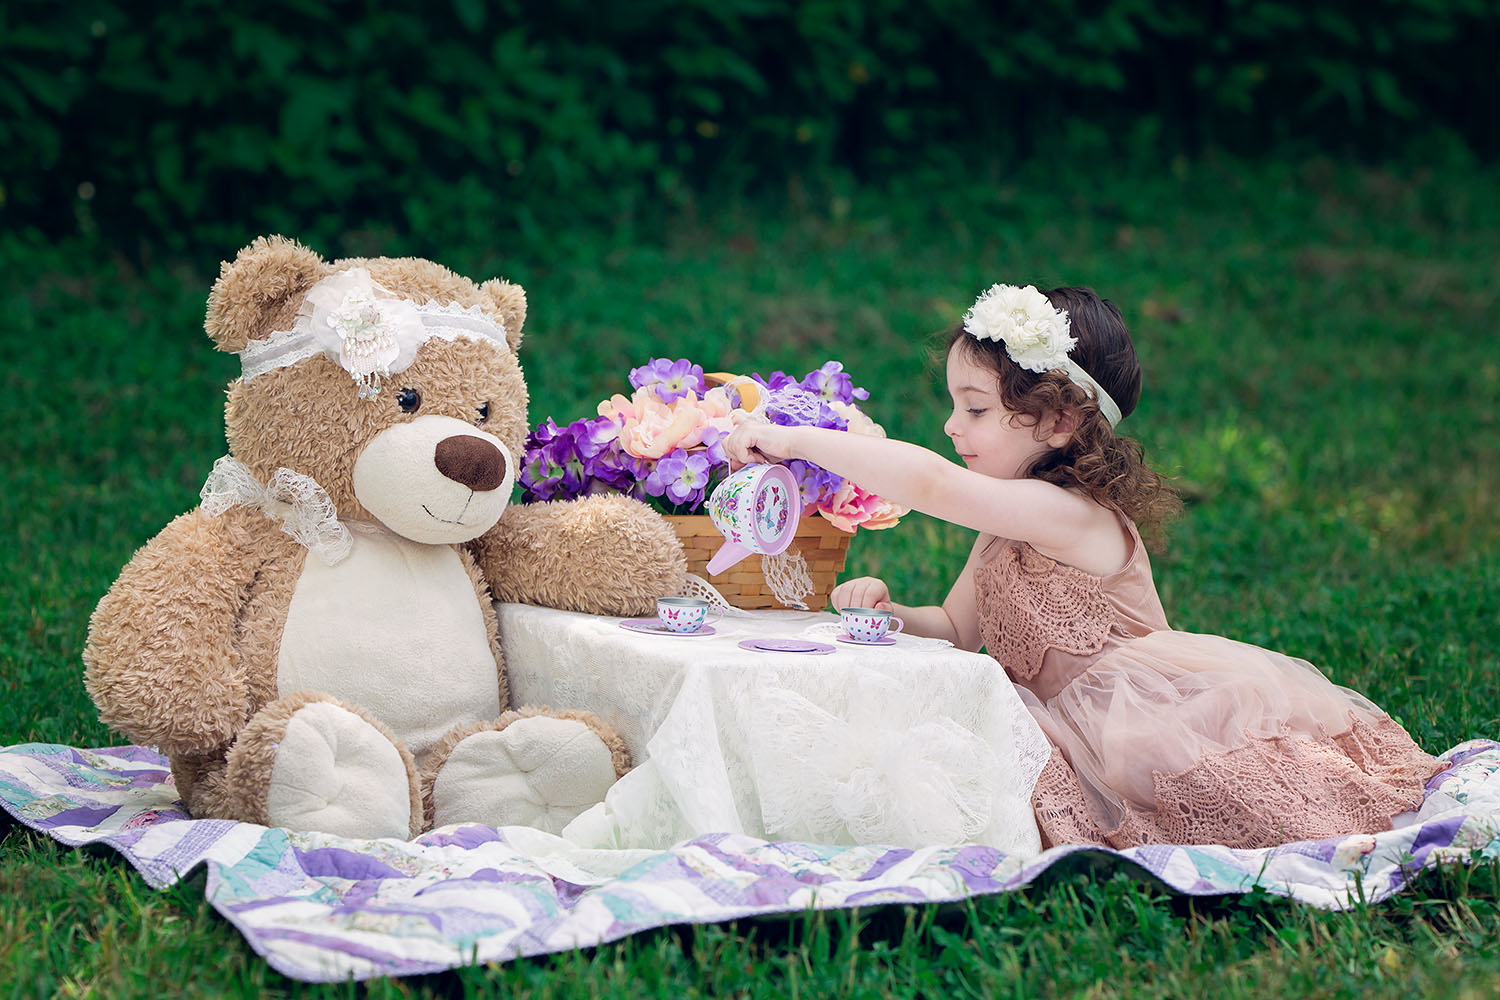 Girl enjoying a tea party with victorian theme including pearls and lace